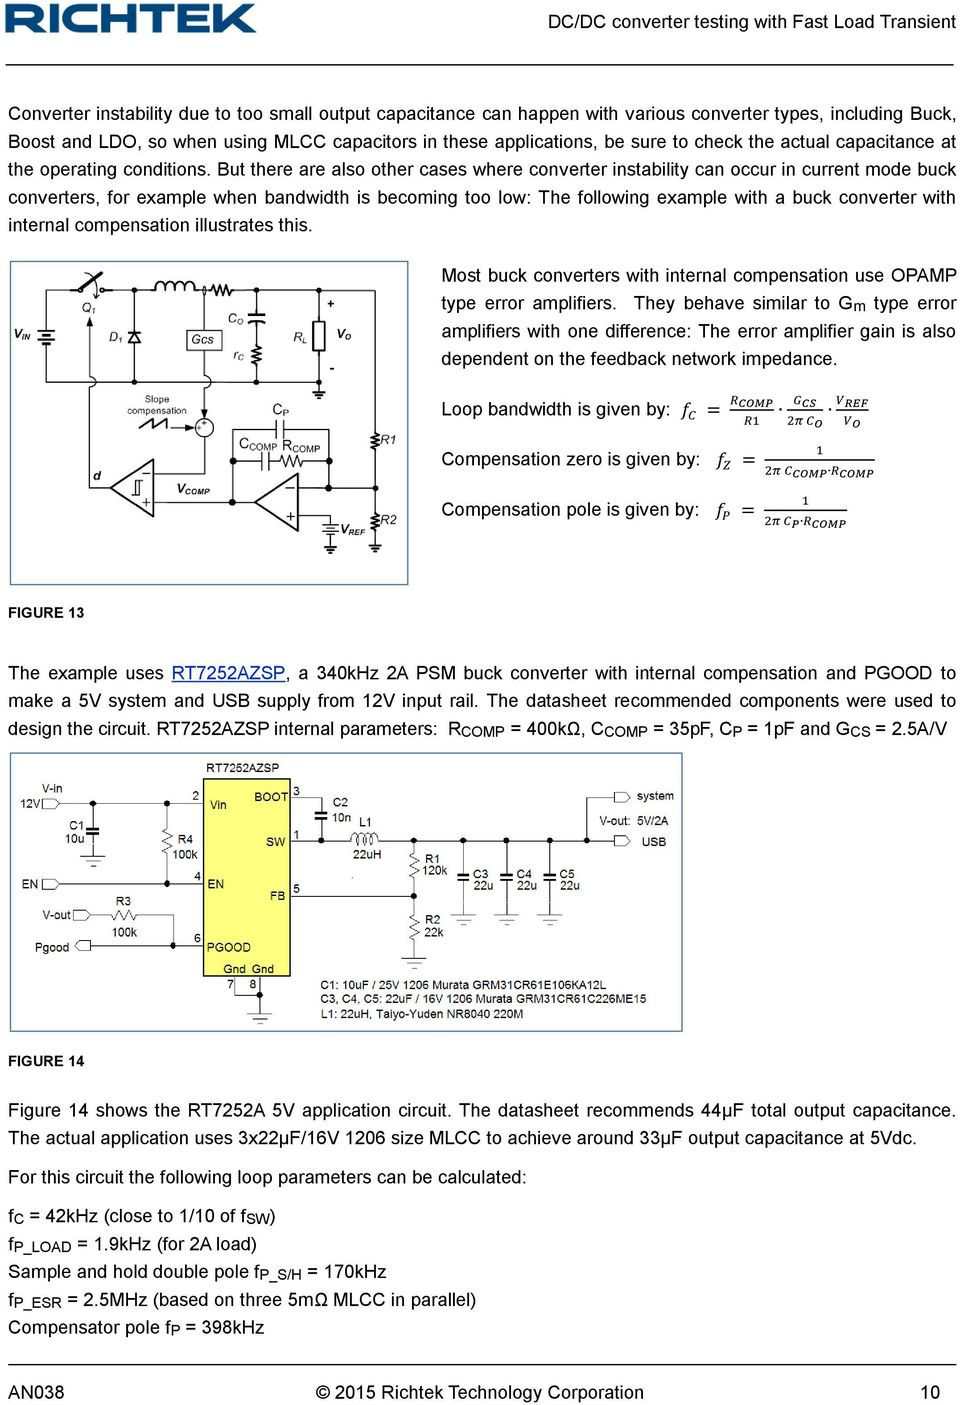 Dc Converter Testing With Fast Load Transient Pdf Buck 1 Watt White Led Driver But There Are Also Other Cases Where Instability Can Occur In Current Mode Converters